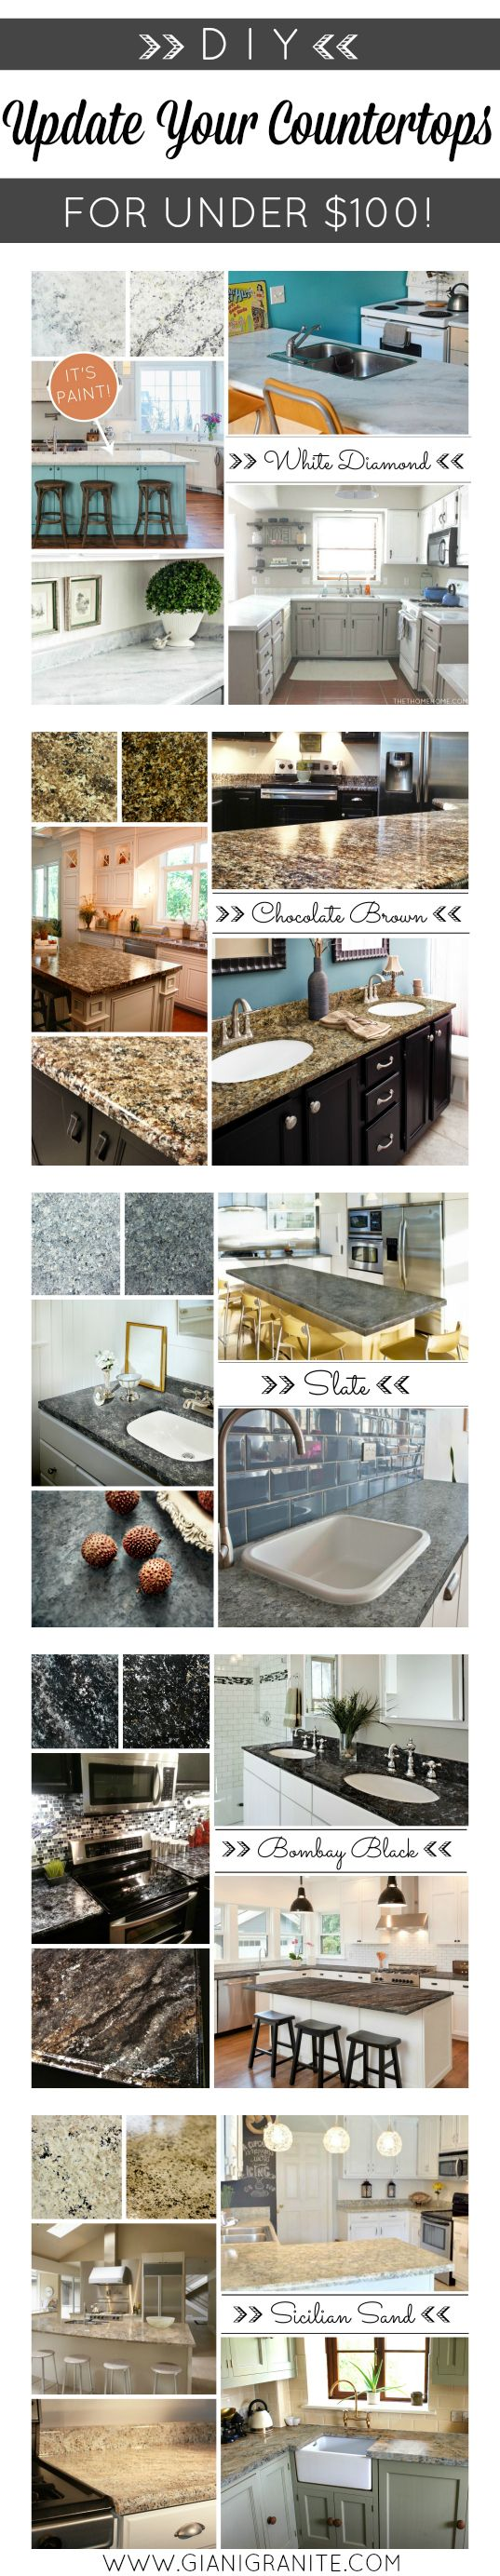 Beautiful PAINTED countertops! DIY countertop paint kits from Giani Granite. Get the look of natural stone for under $100!! Budget-friendly kitchen makeover. www.gianigranite.com